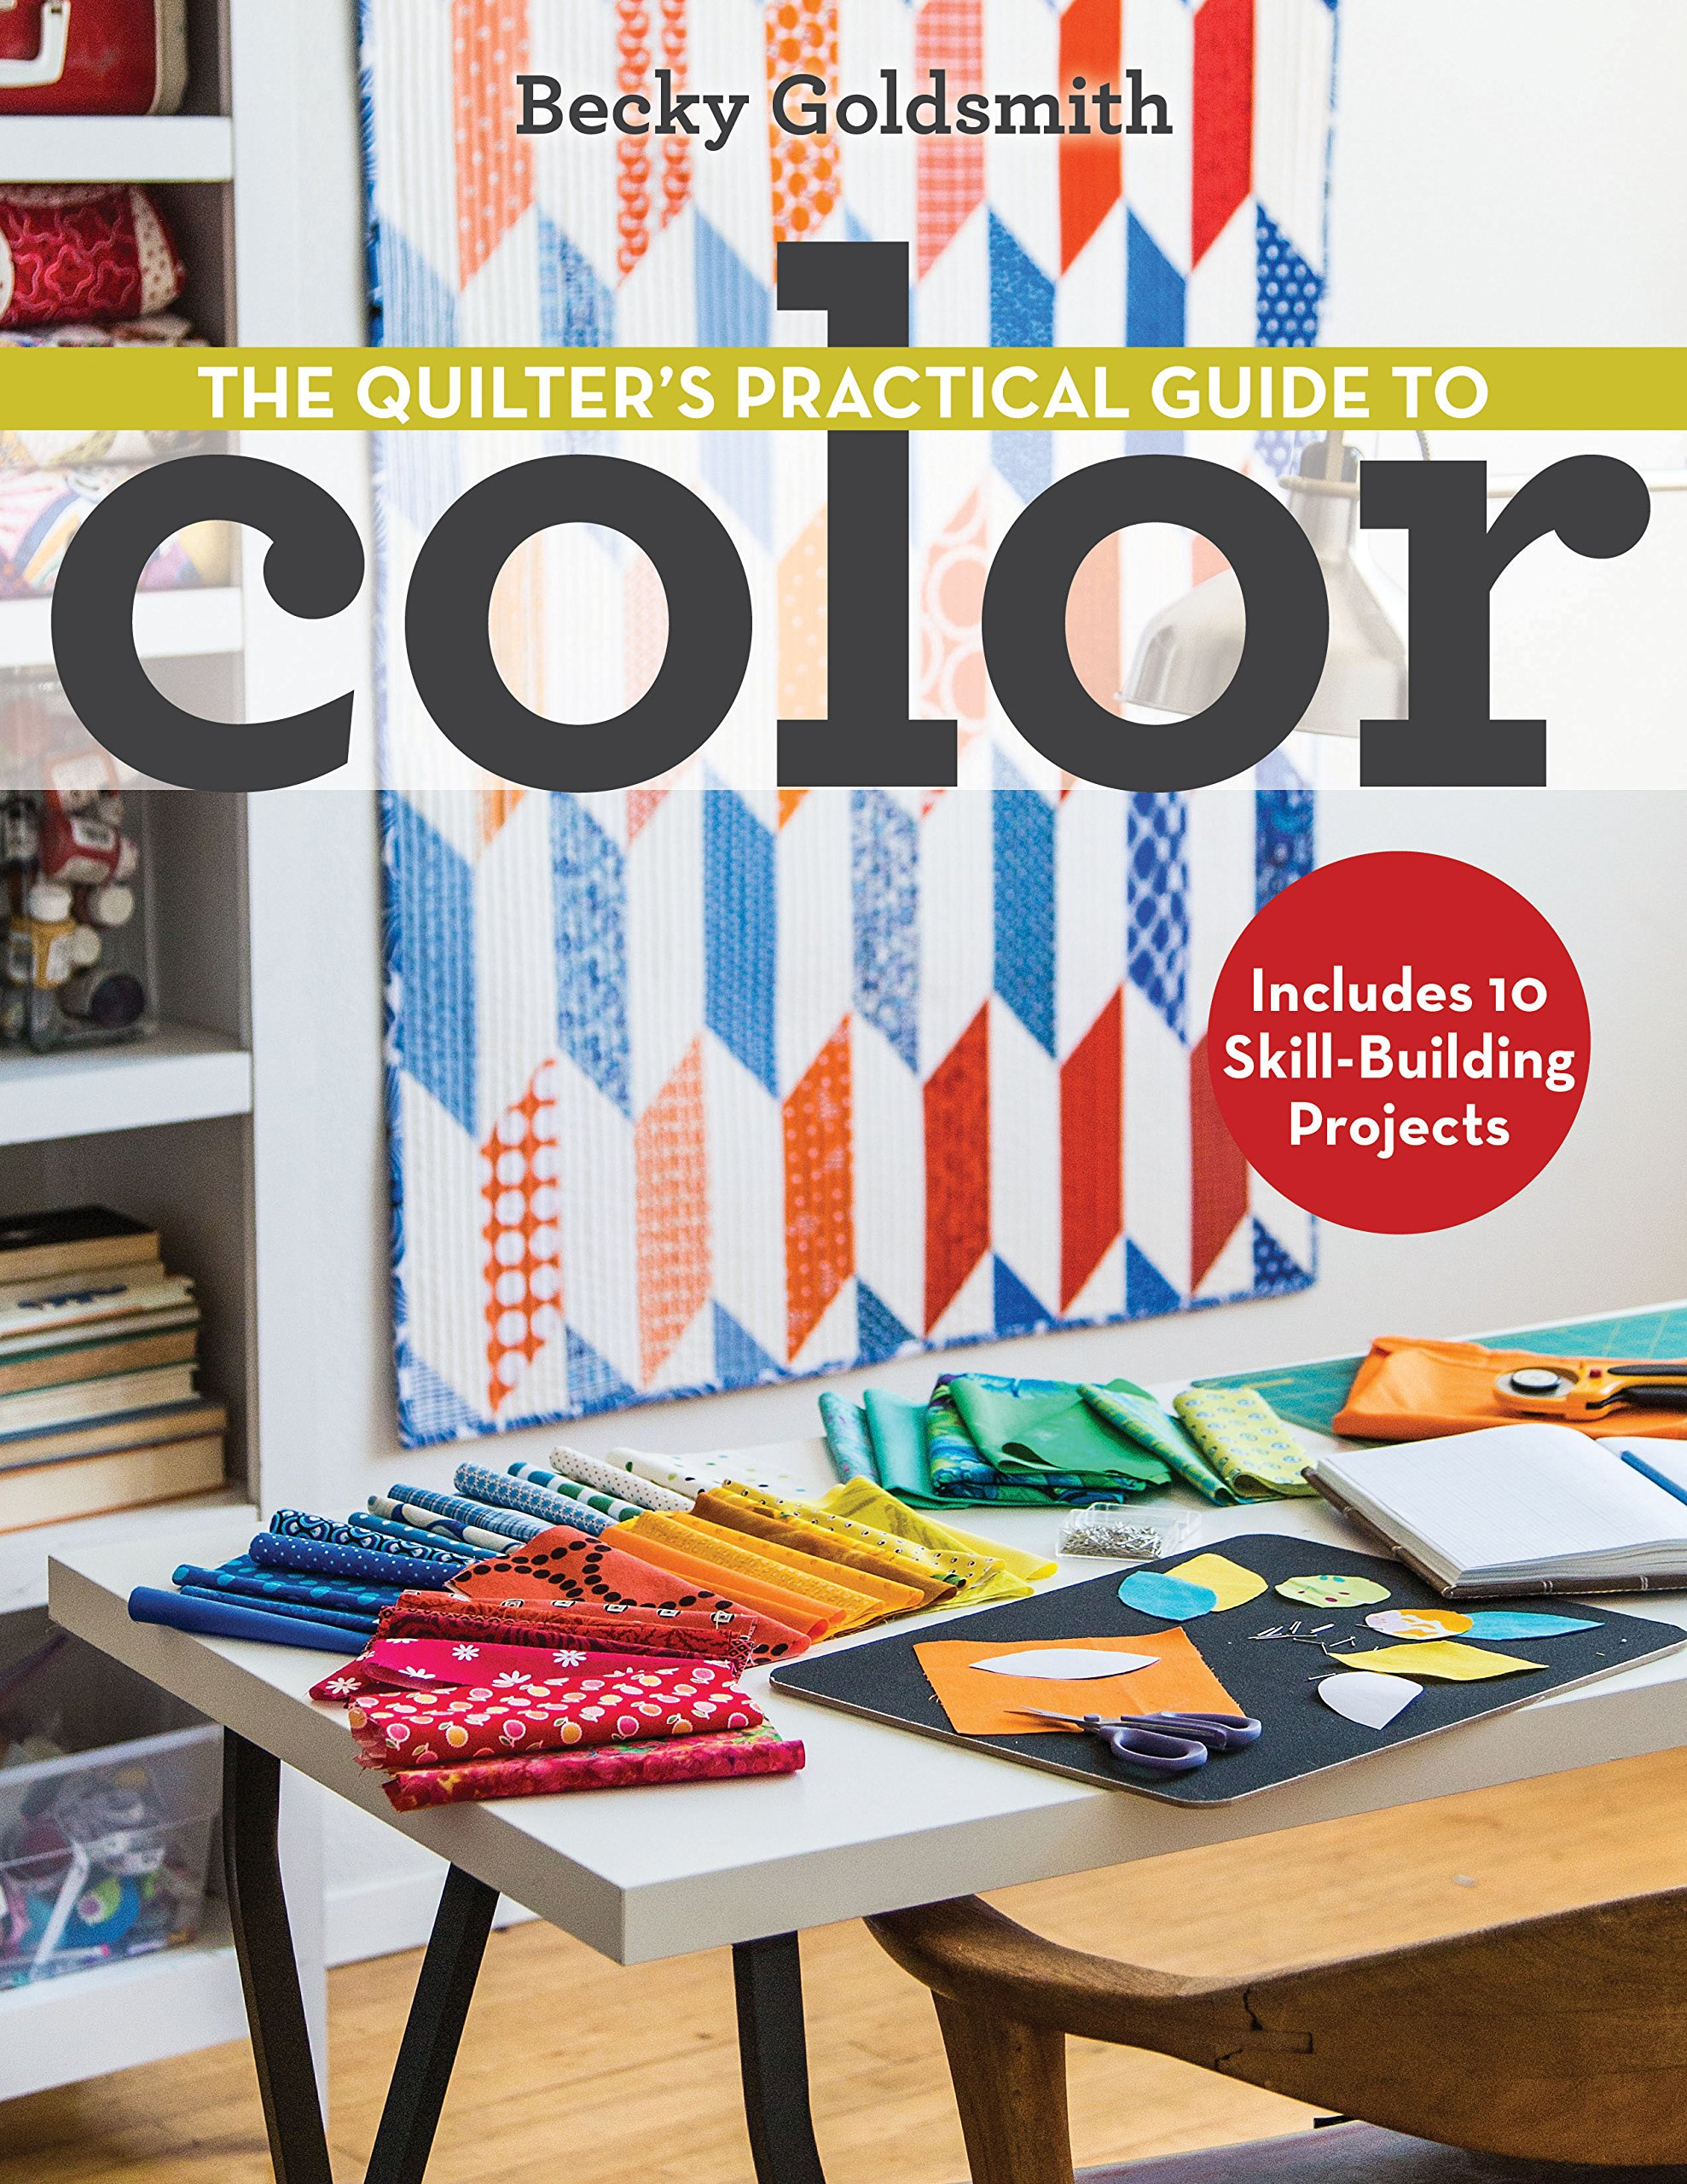 The quilters practical guide to color includes 10 skill building the quilters practical guide to color includes 10 skill building projects becky goldsmith 9781607058649 amazon books geenschuldenfo Gallery